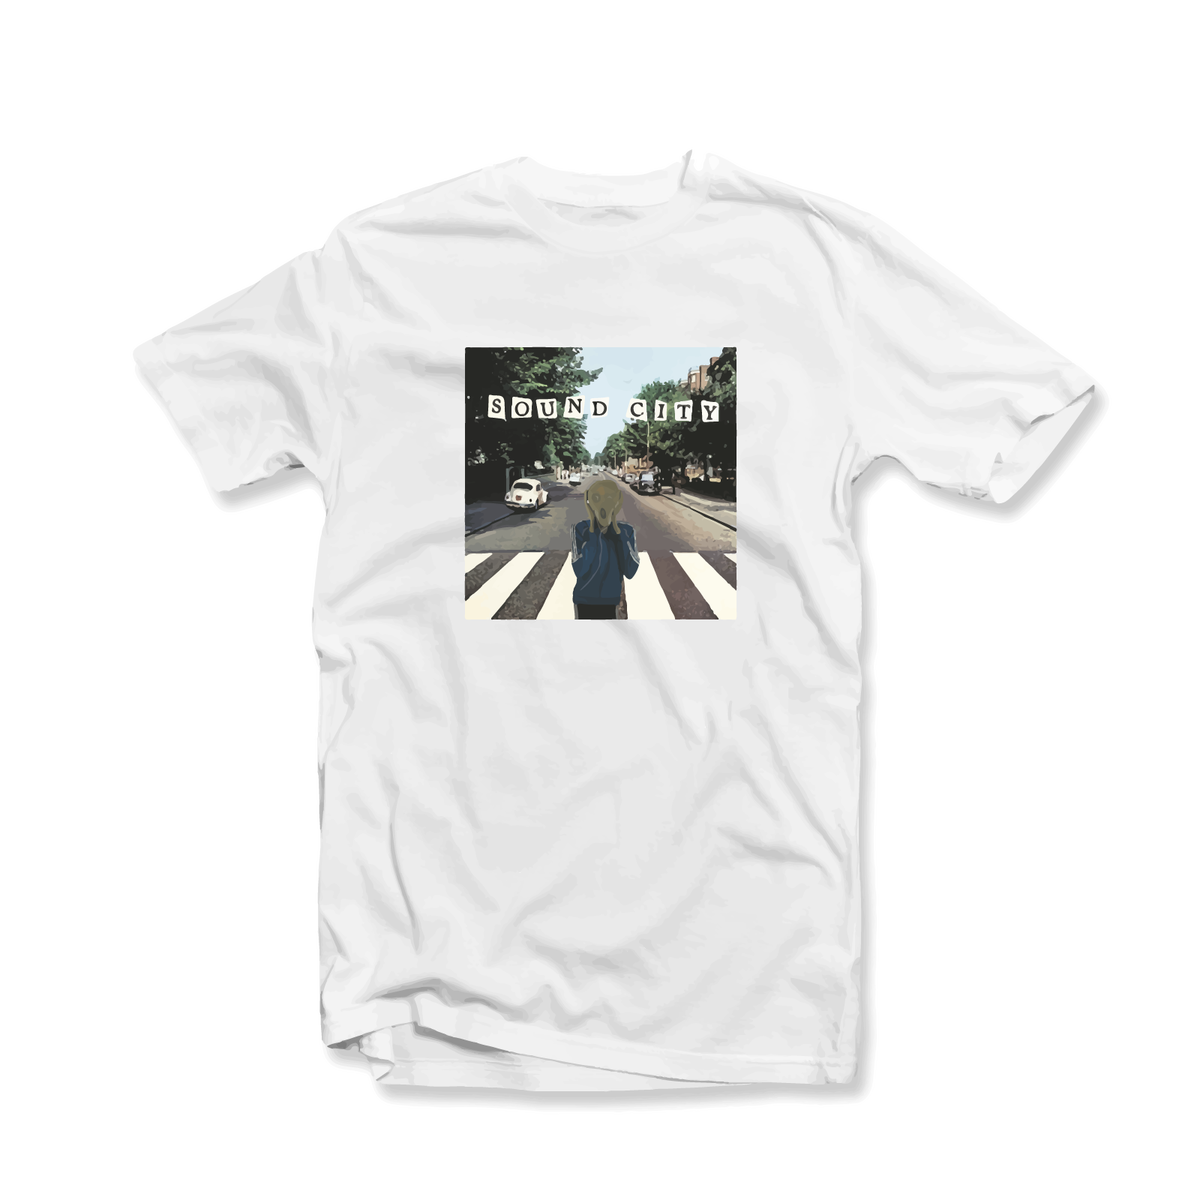 Image of Sound City x Edvard Munch Style Limited Edition T-Shirt